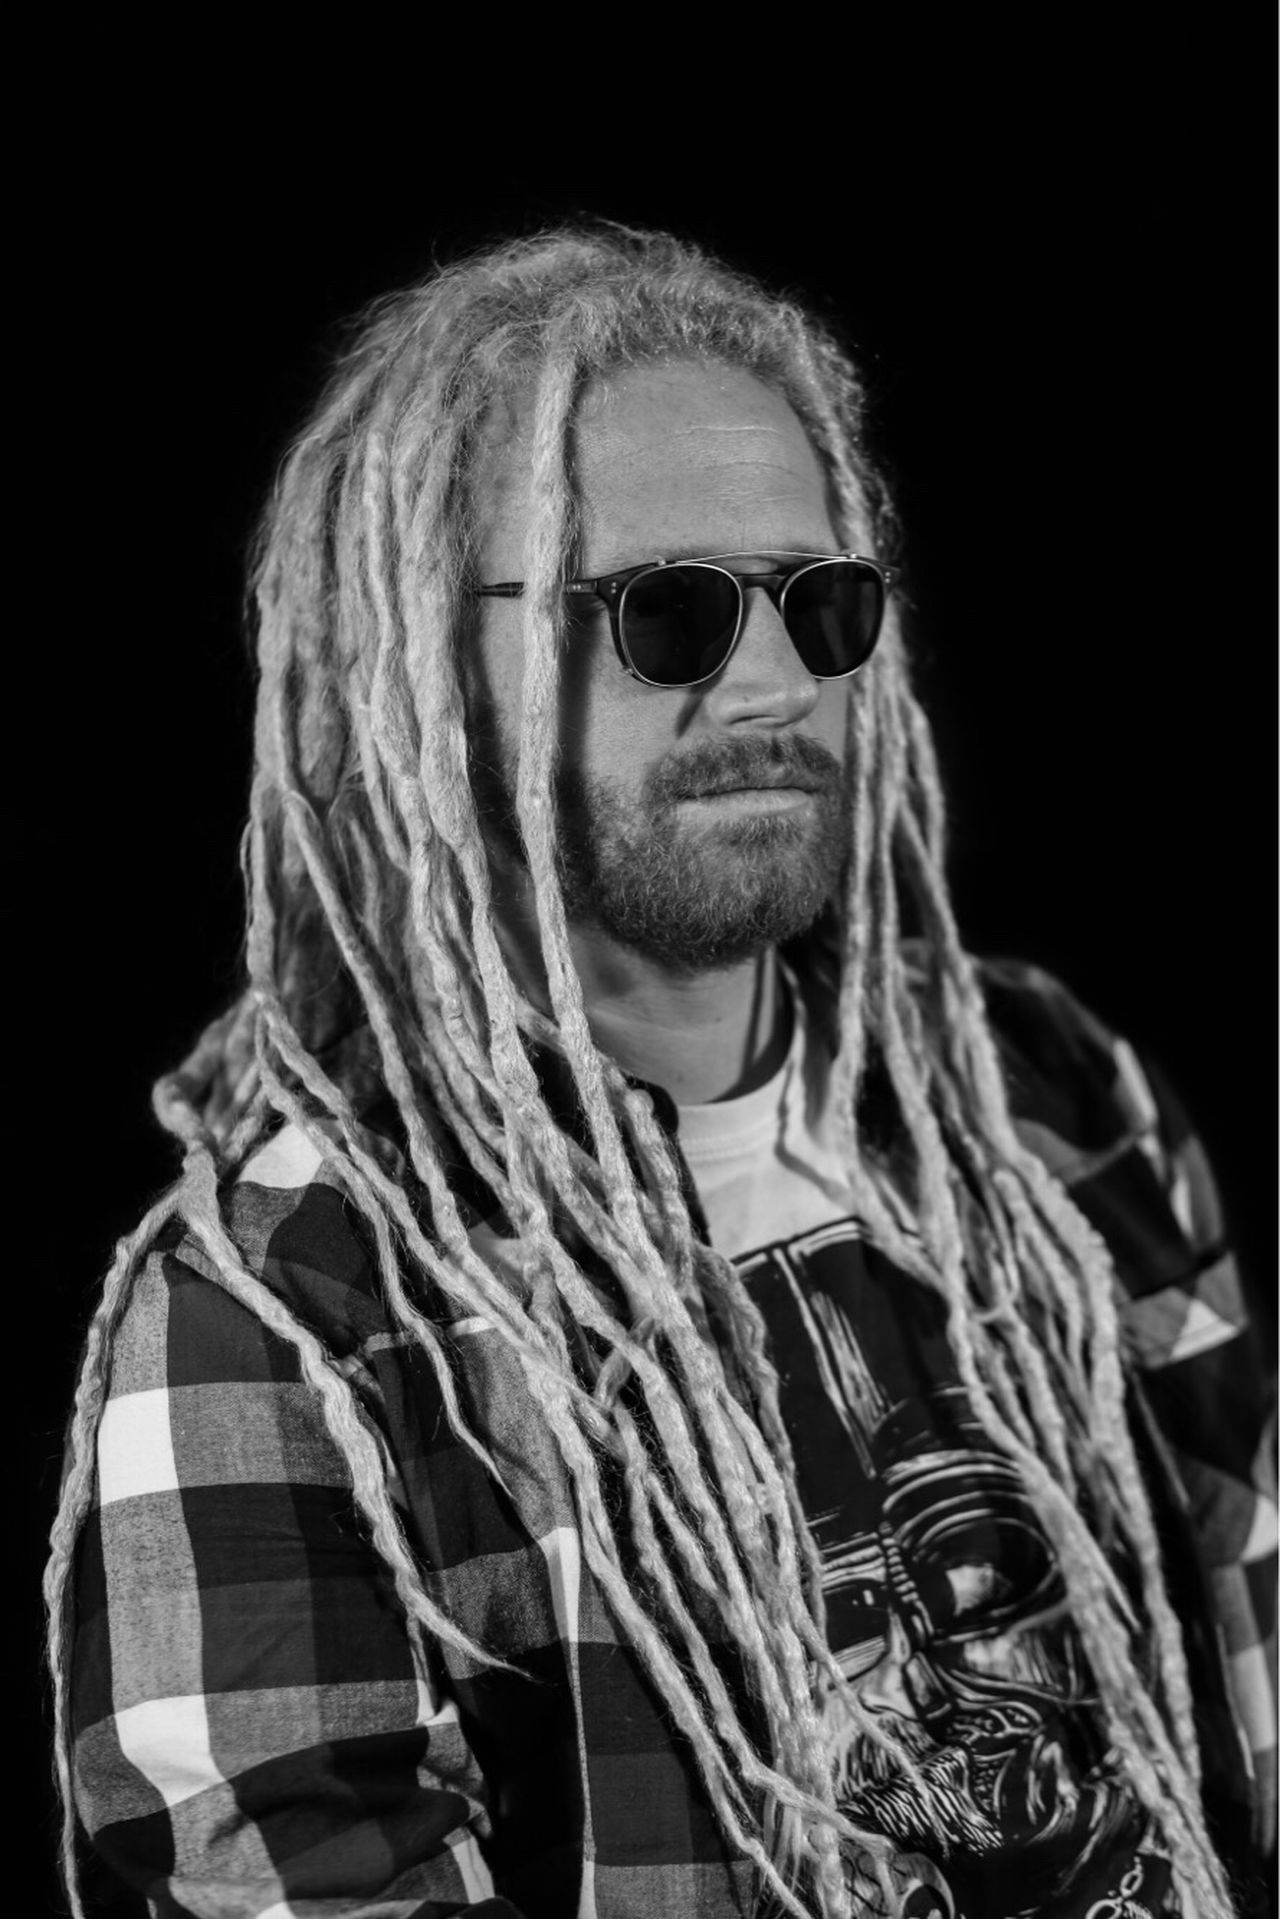 Black Background Sunglasses Portrait Looking At Camera Young Adult Adult People One Person Adults Only Men One Man Only Human Body Part RASTA Adult Silhouette Scenics Glasses Blonde